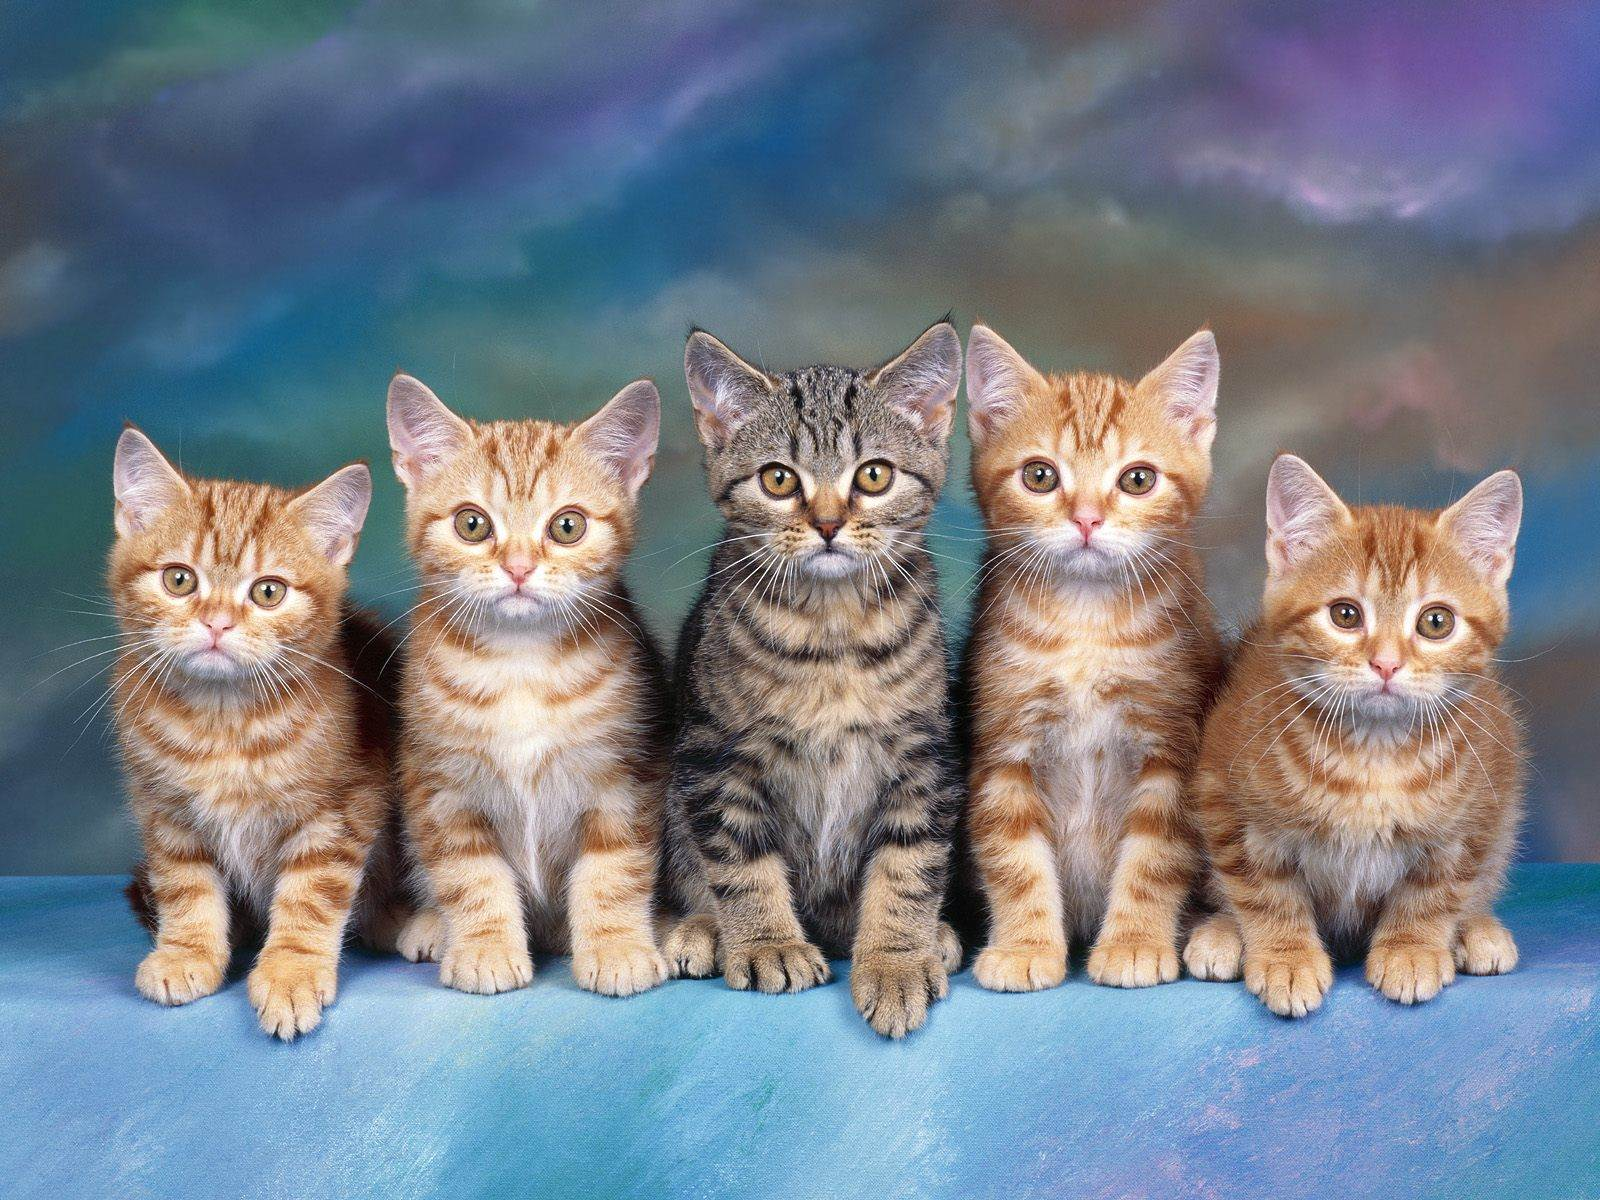 Free kittens wallpaper adorable wallpapers download in original size thecheapjerseys Choice Image